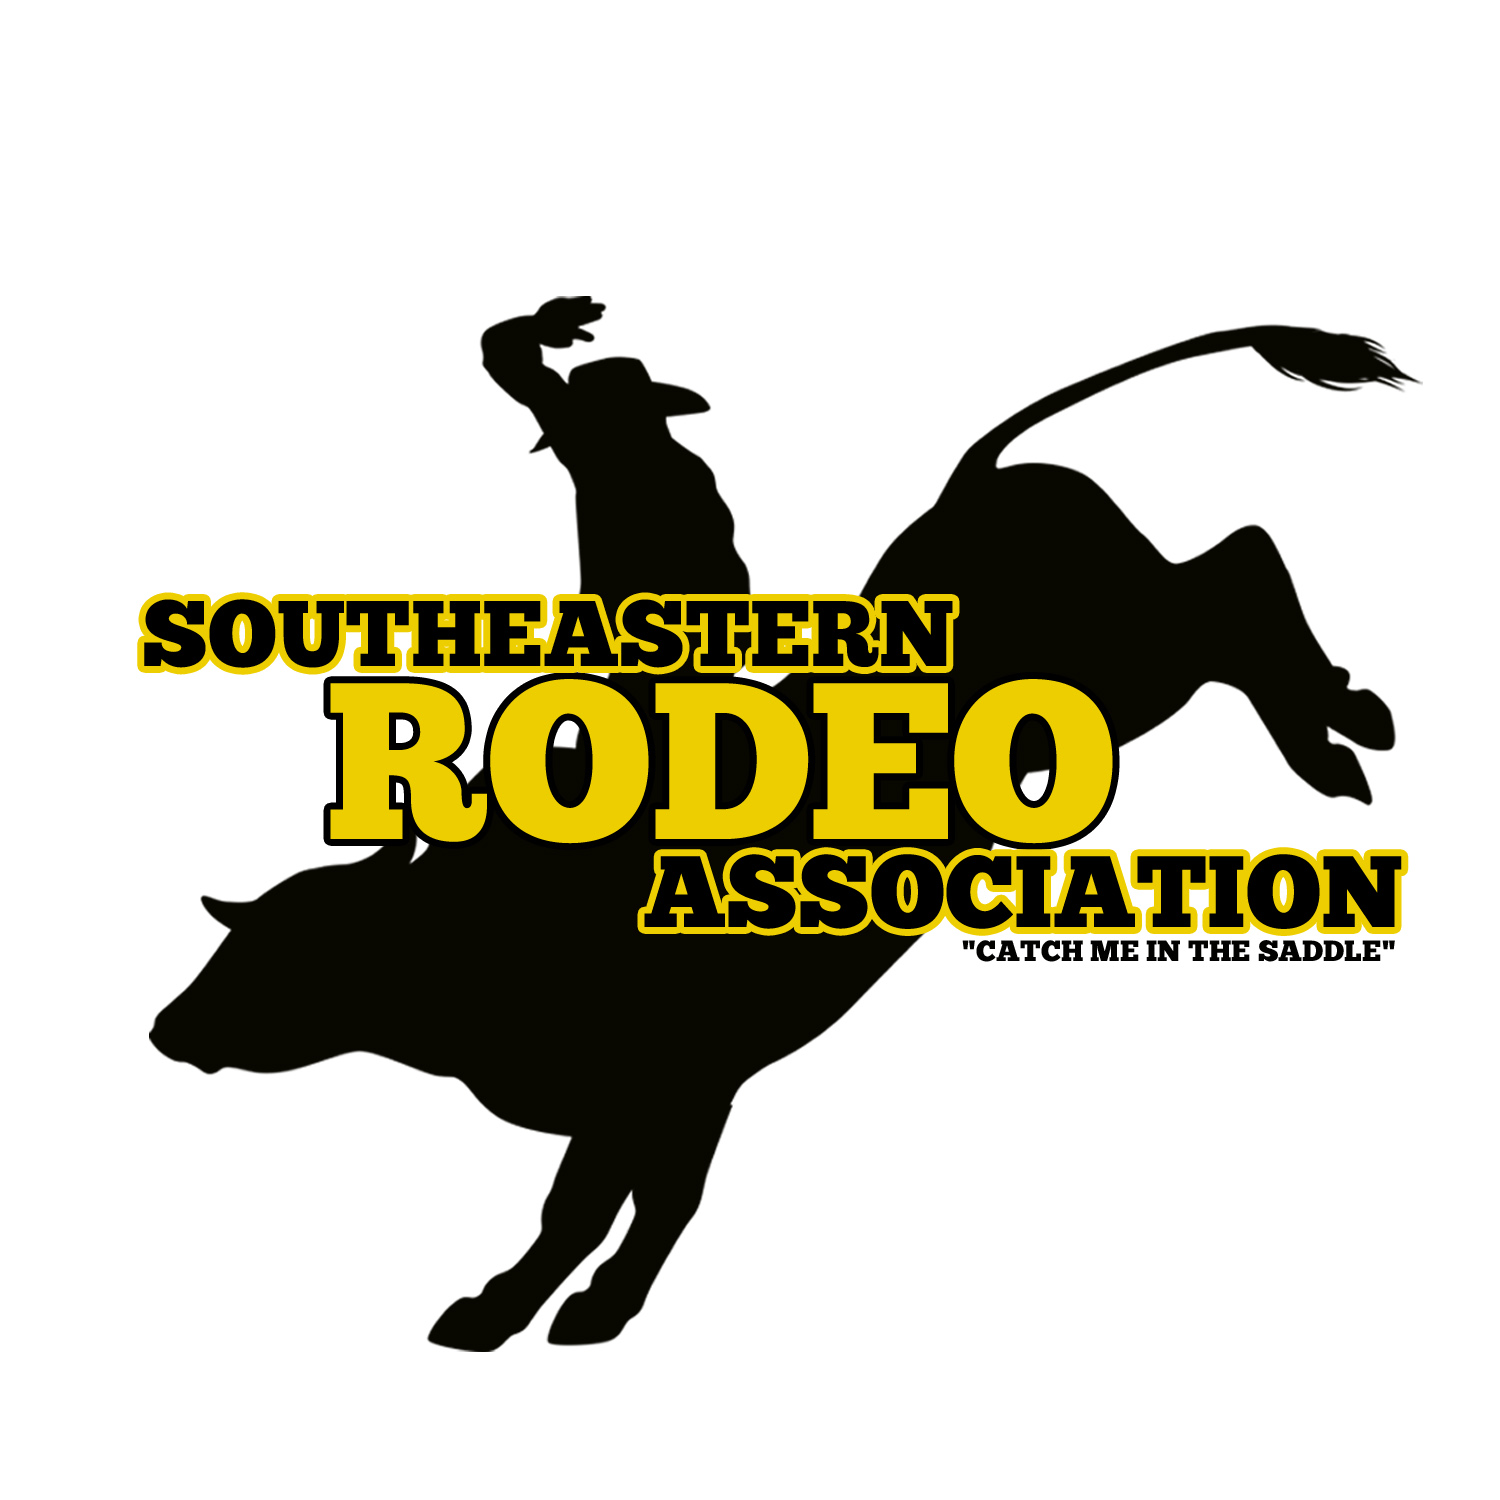 Southeastern Rodeo Association Black Rodeo